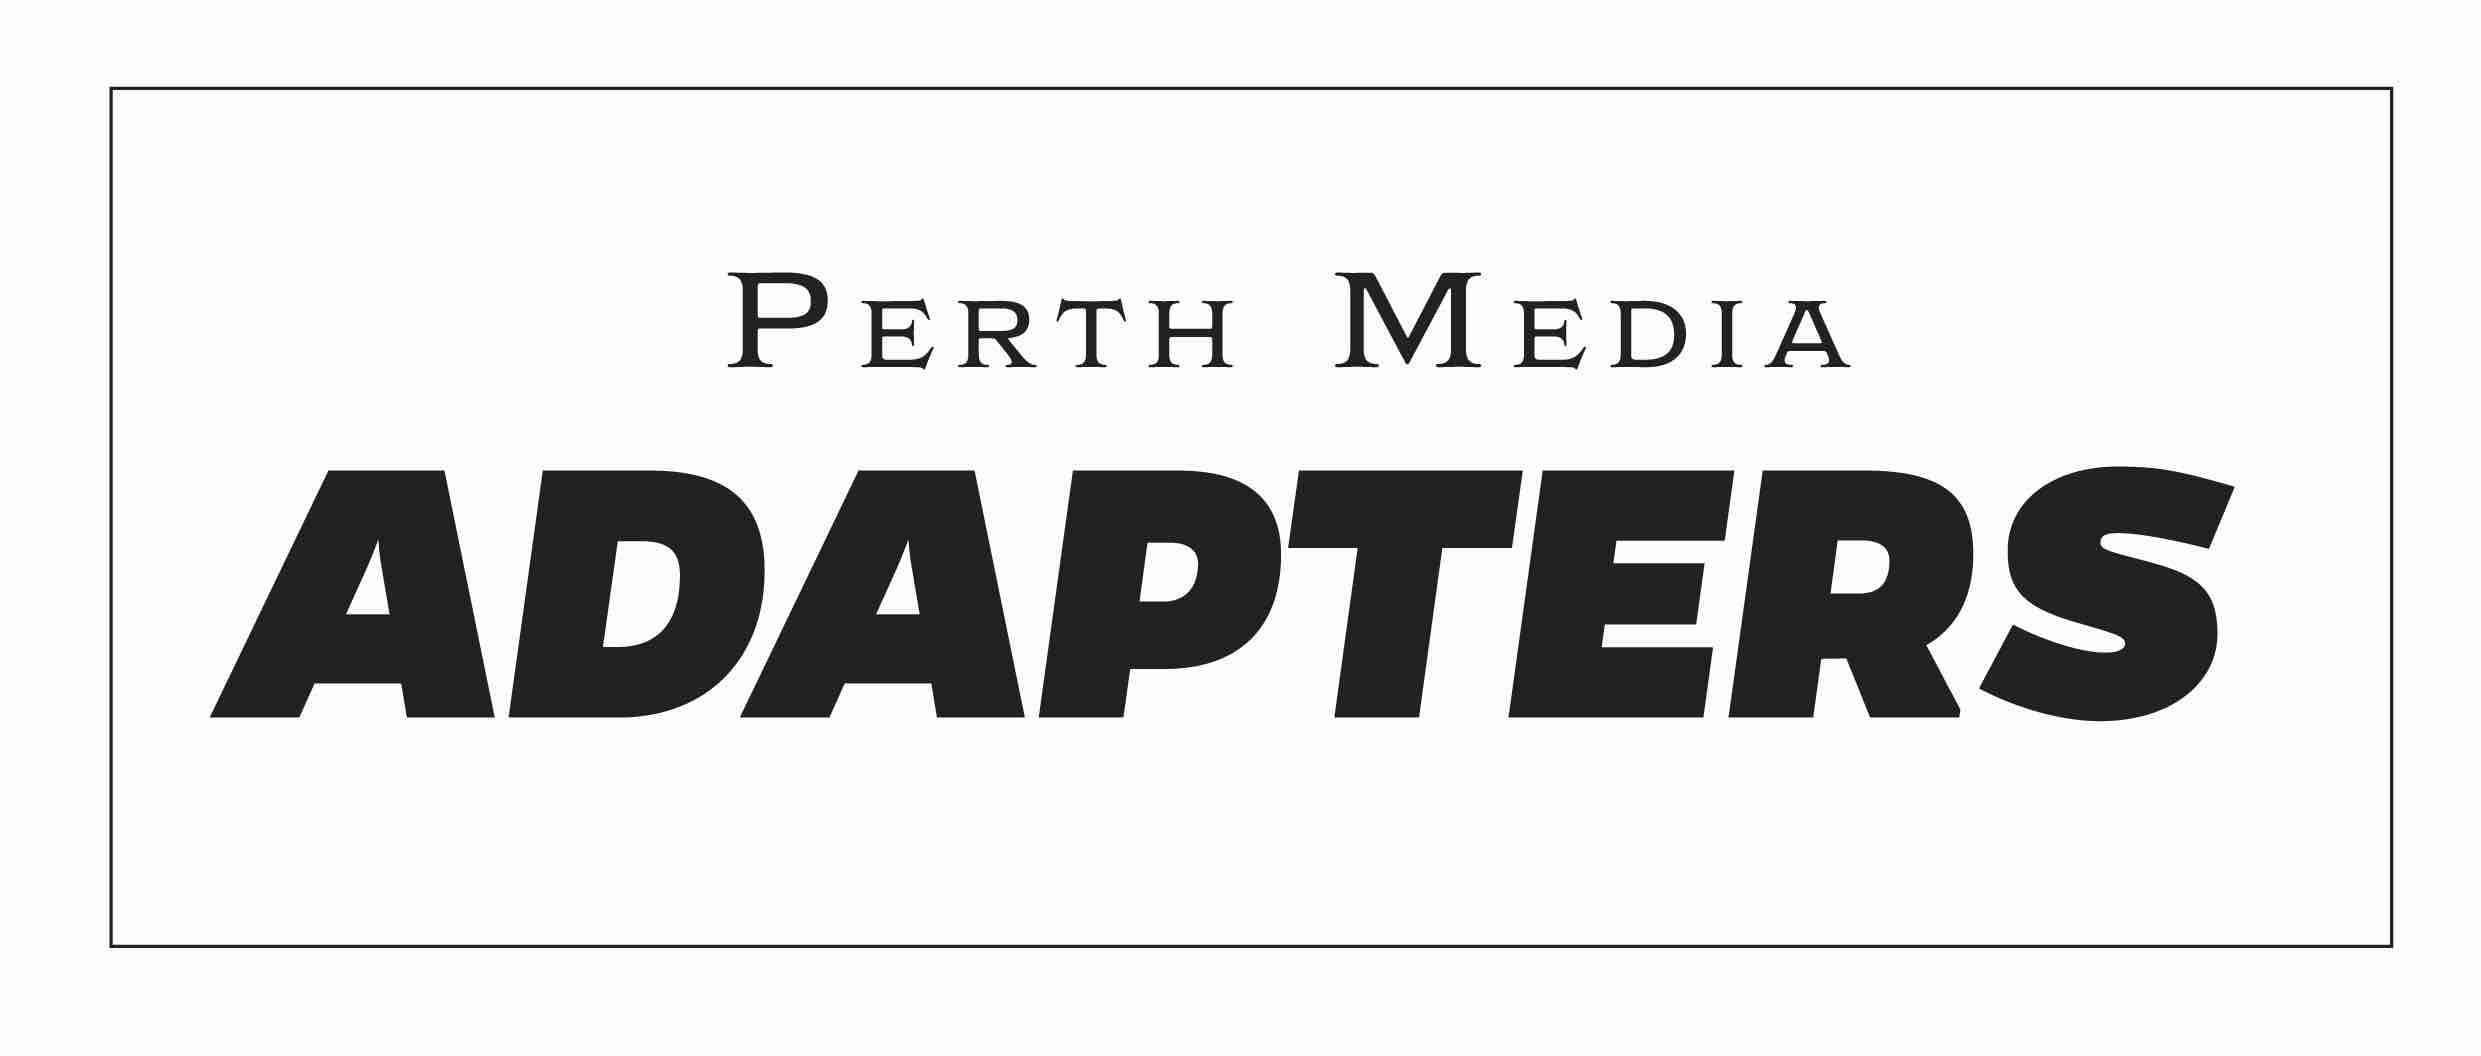 This story has also appeared in Perth Media's Adapters column that features in Western Australian Business News.